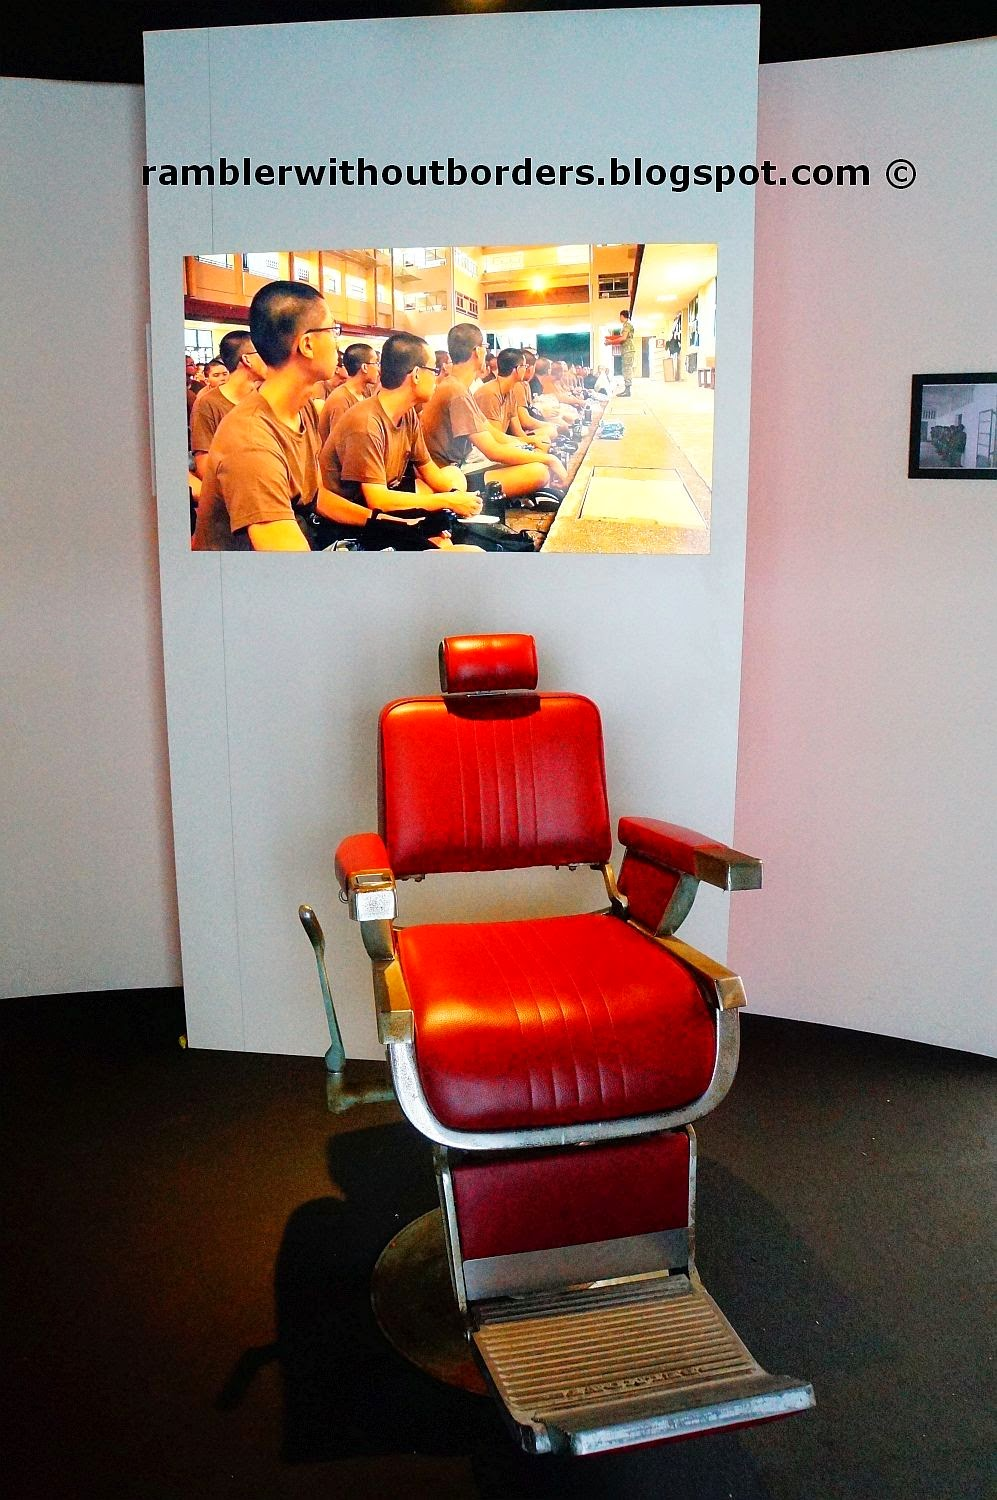 Barber chair, SAF50, Singapore